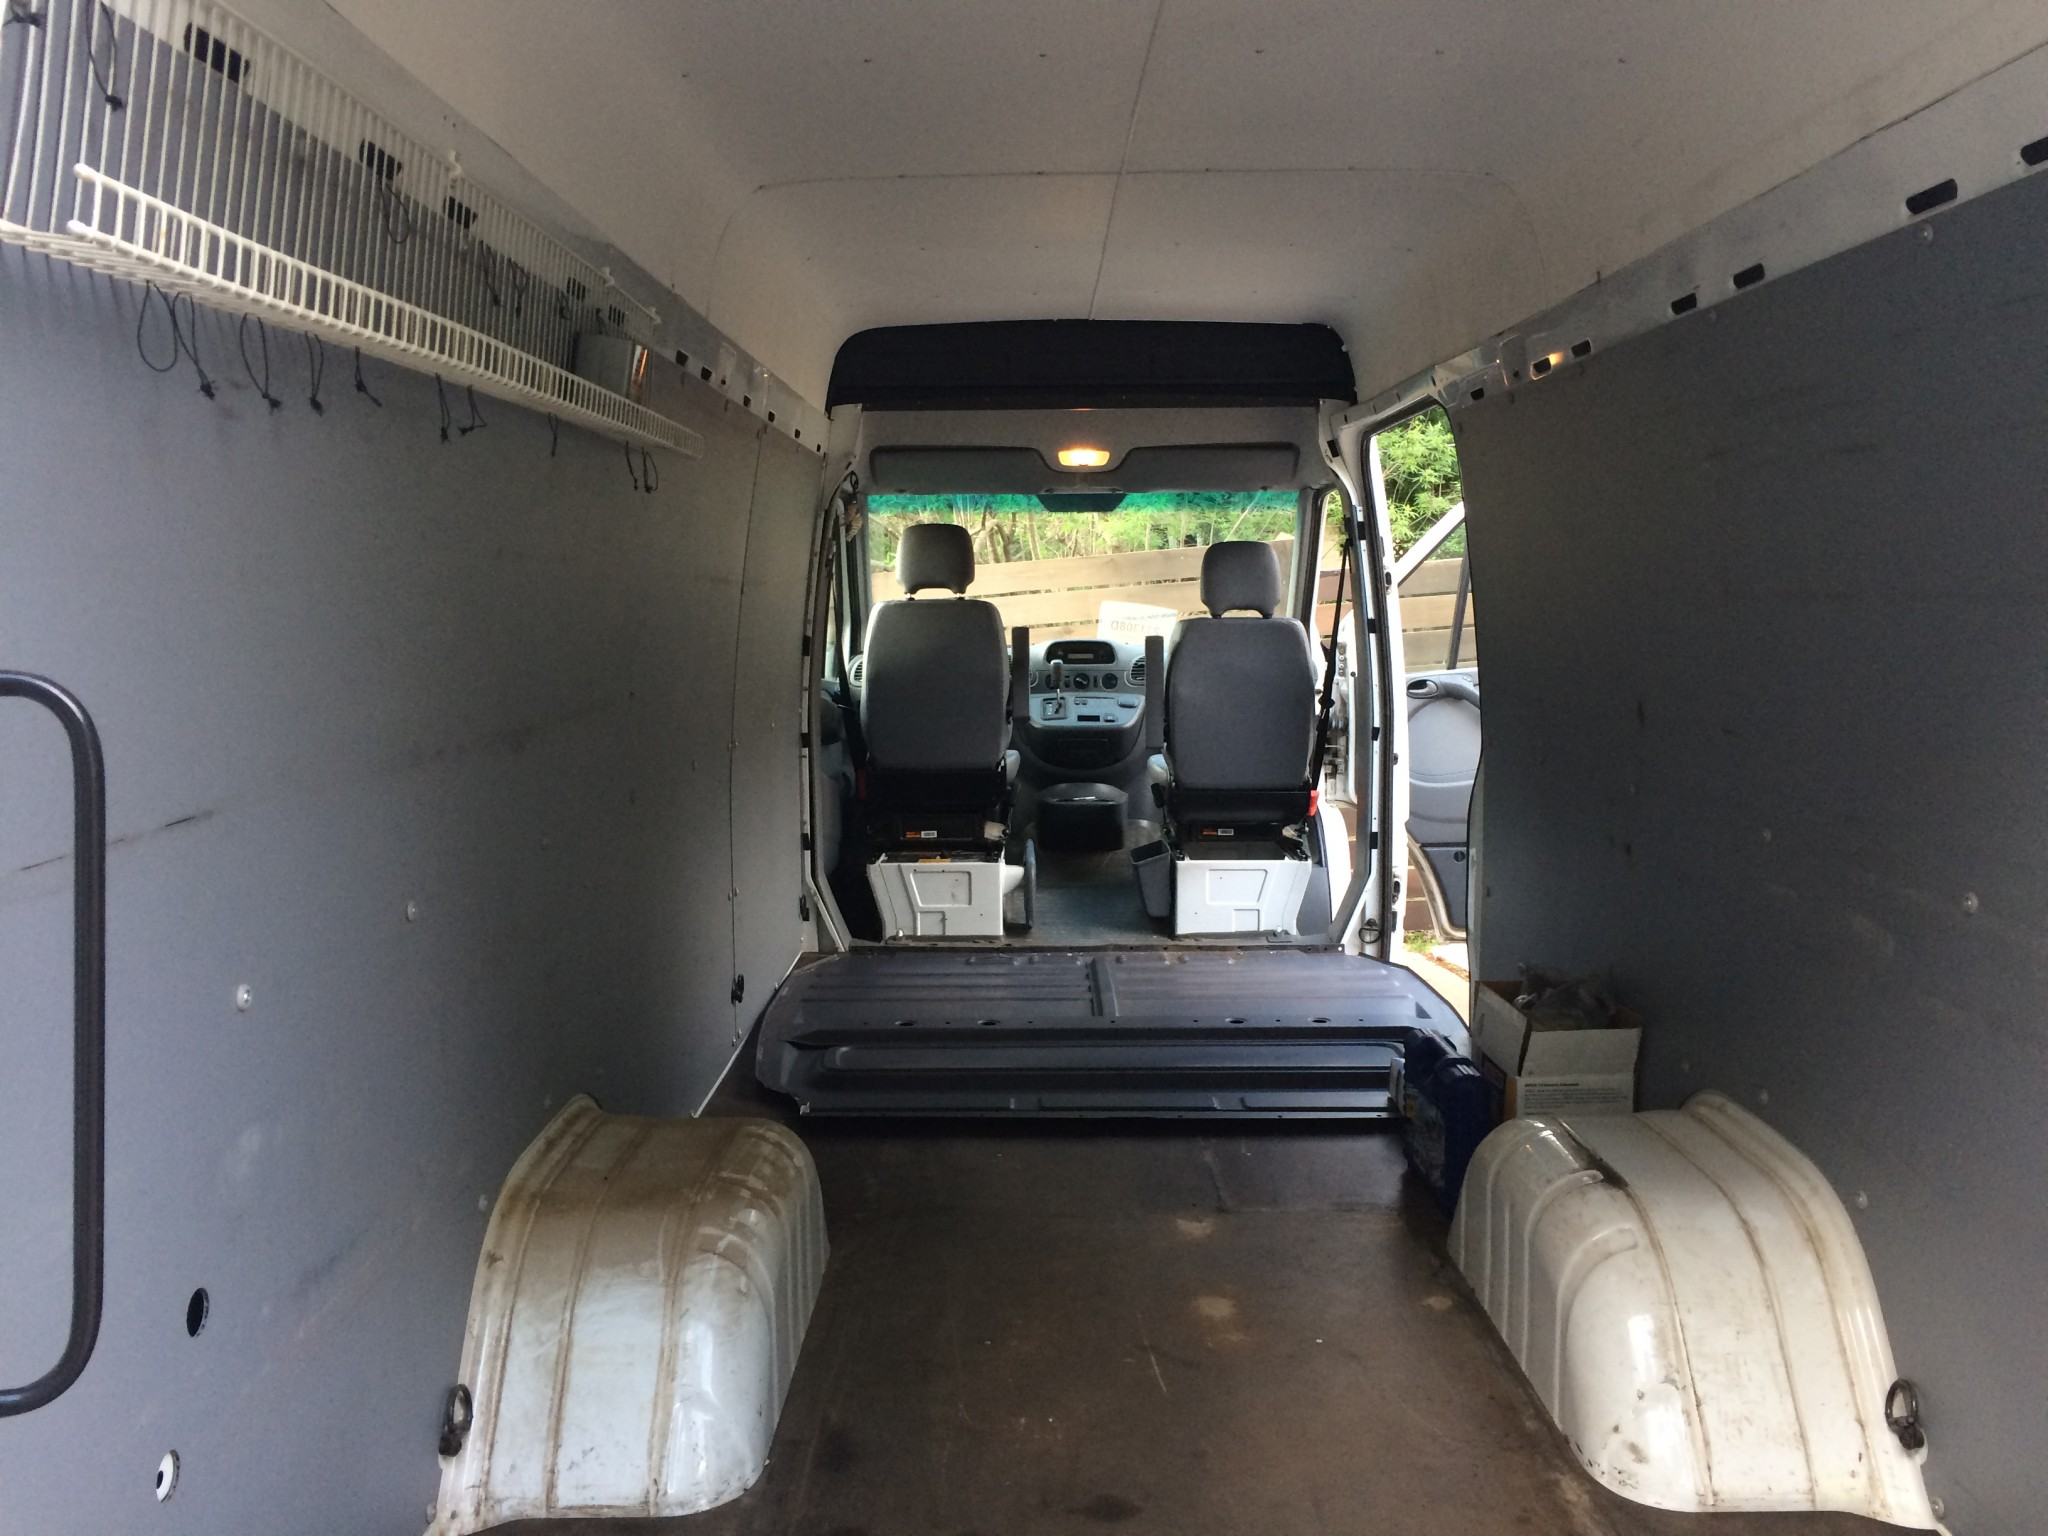 Sprinter Van without bulkhead divider